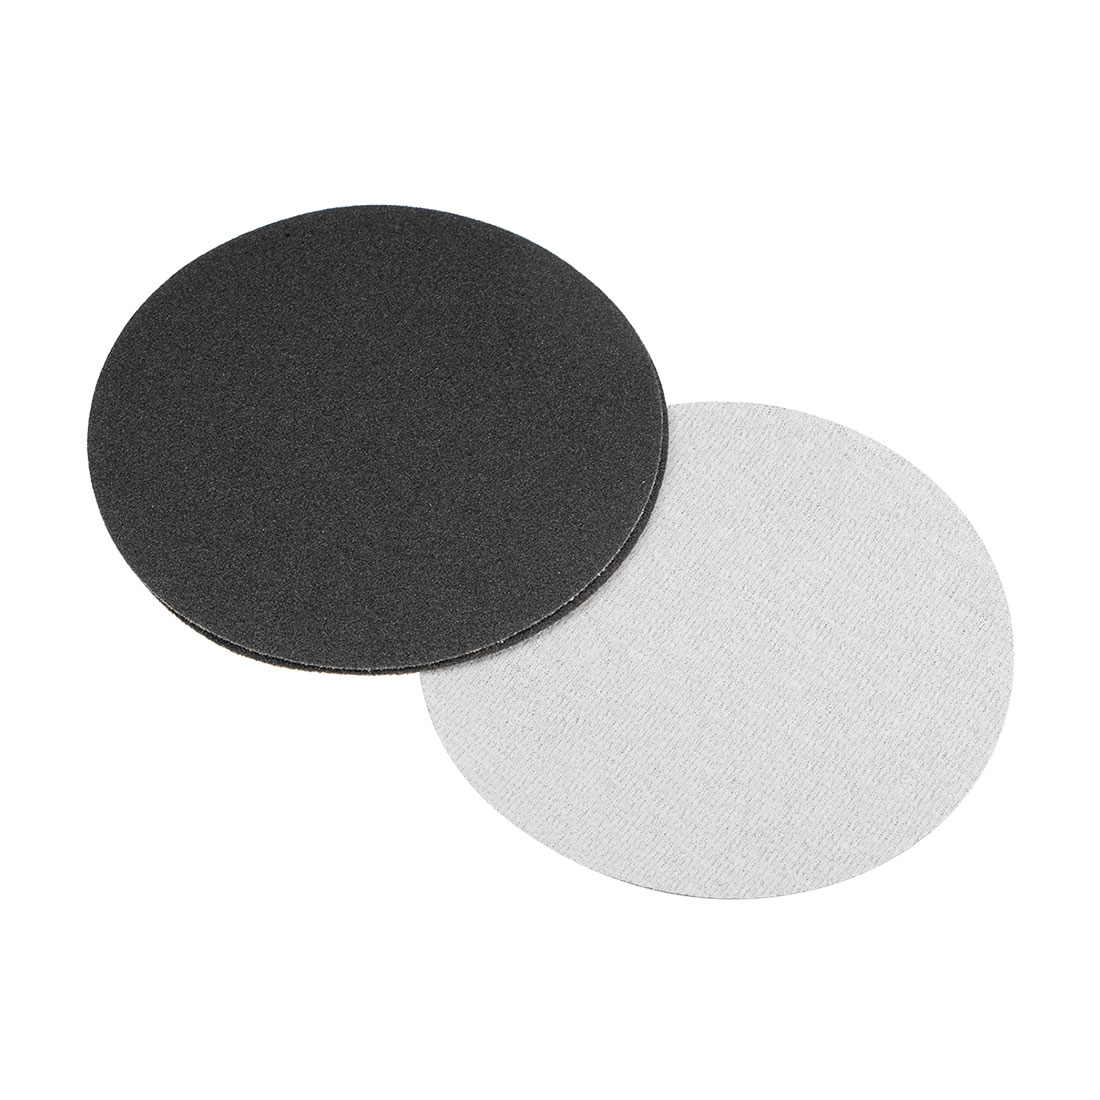 5 inch Wet Dry Discs 100 Grit Hook and Loop Sanding Disc Silicon Carbide 3pcs